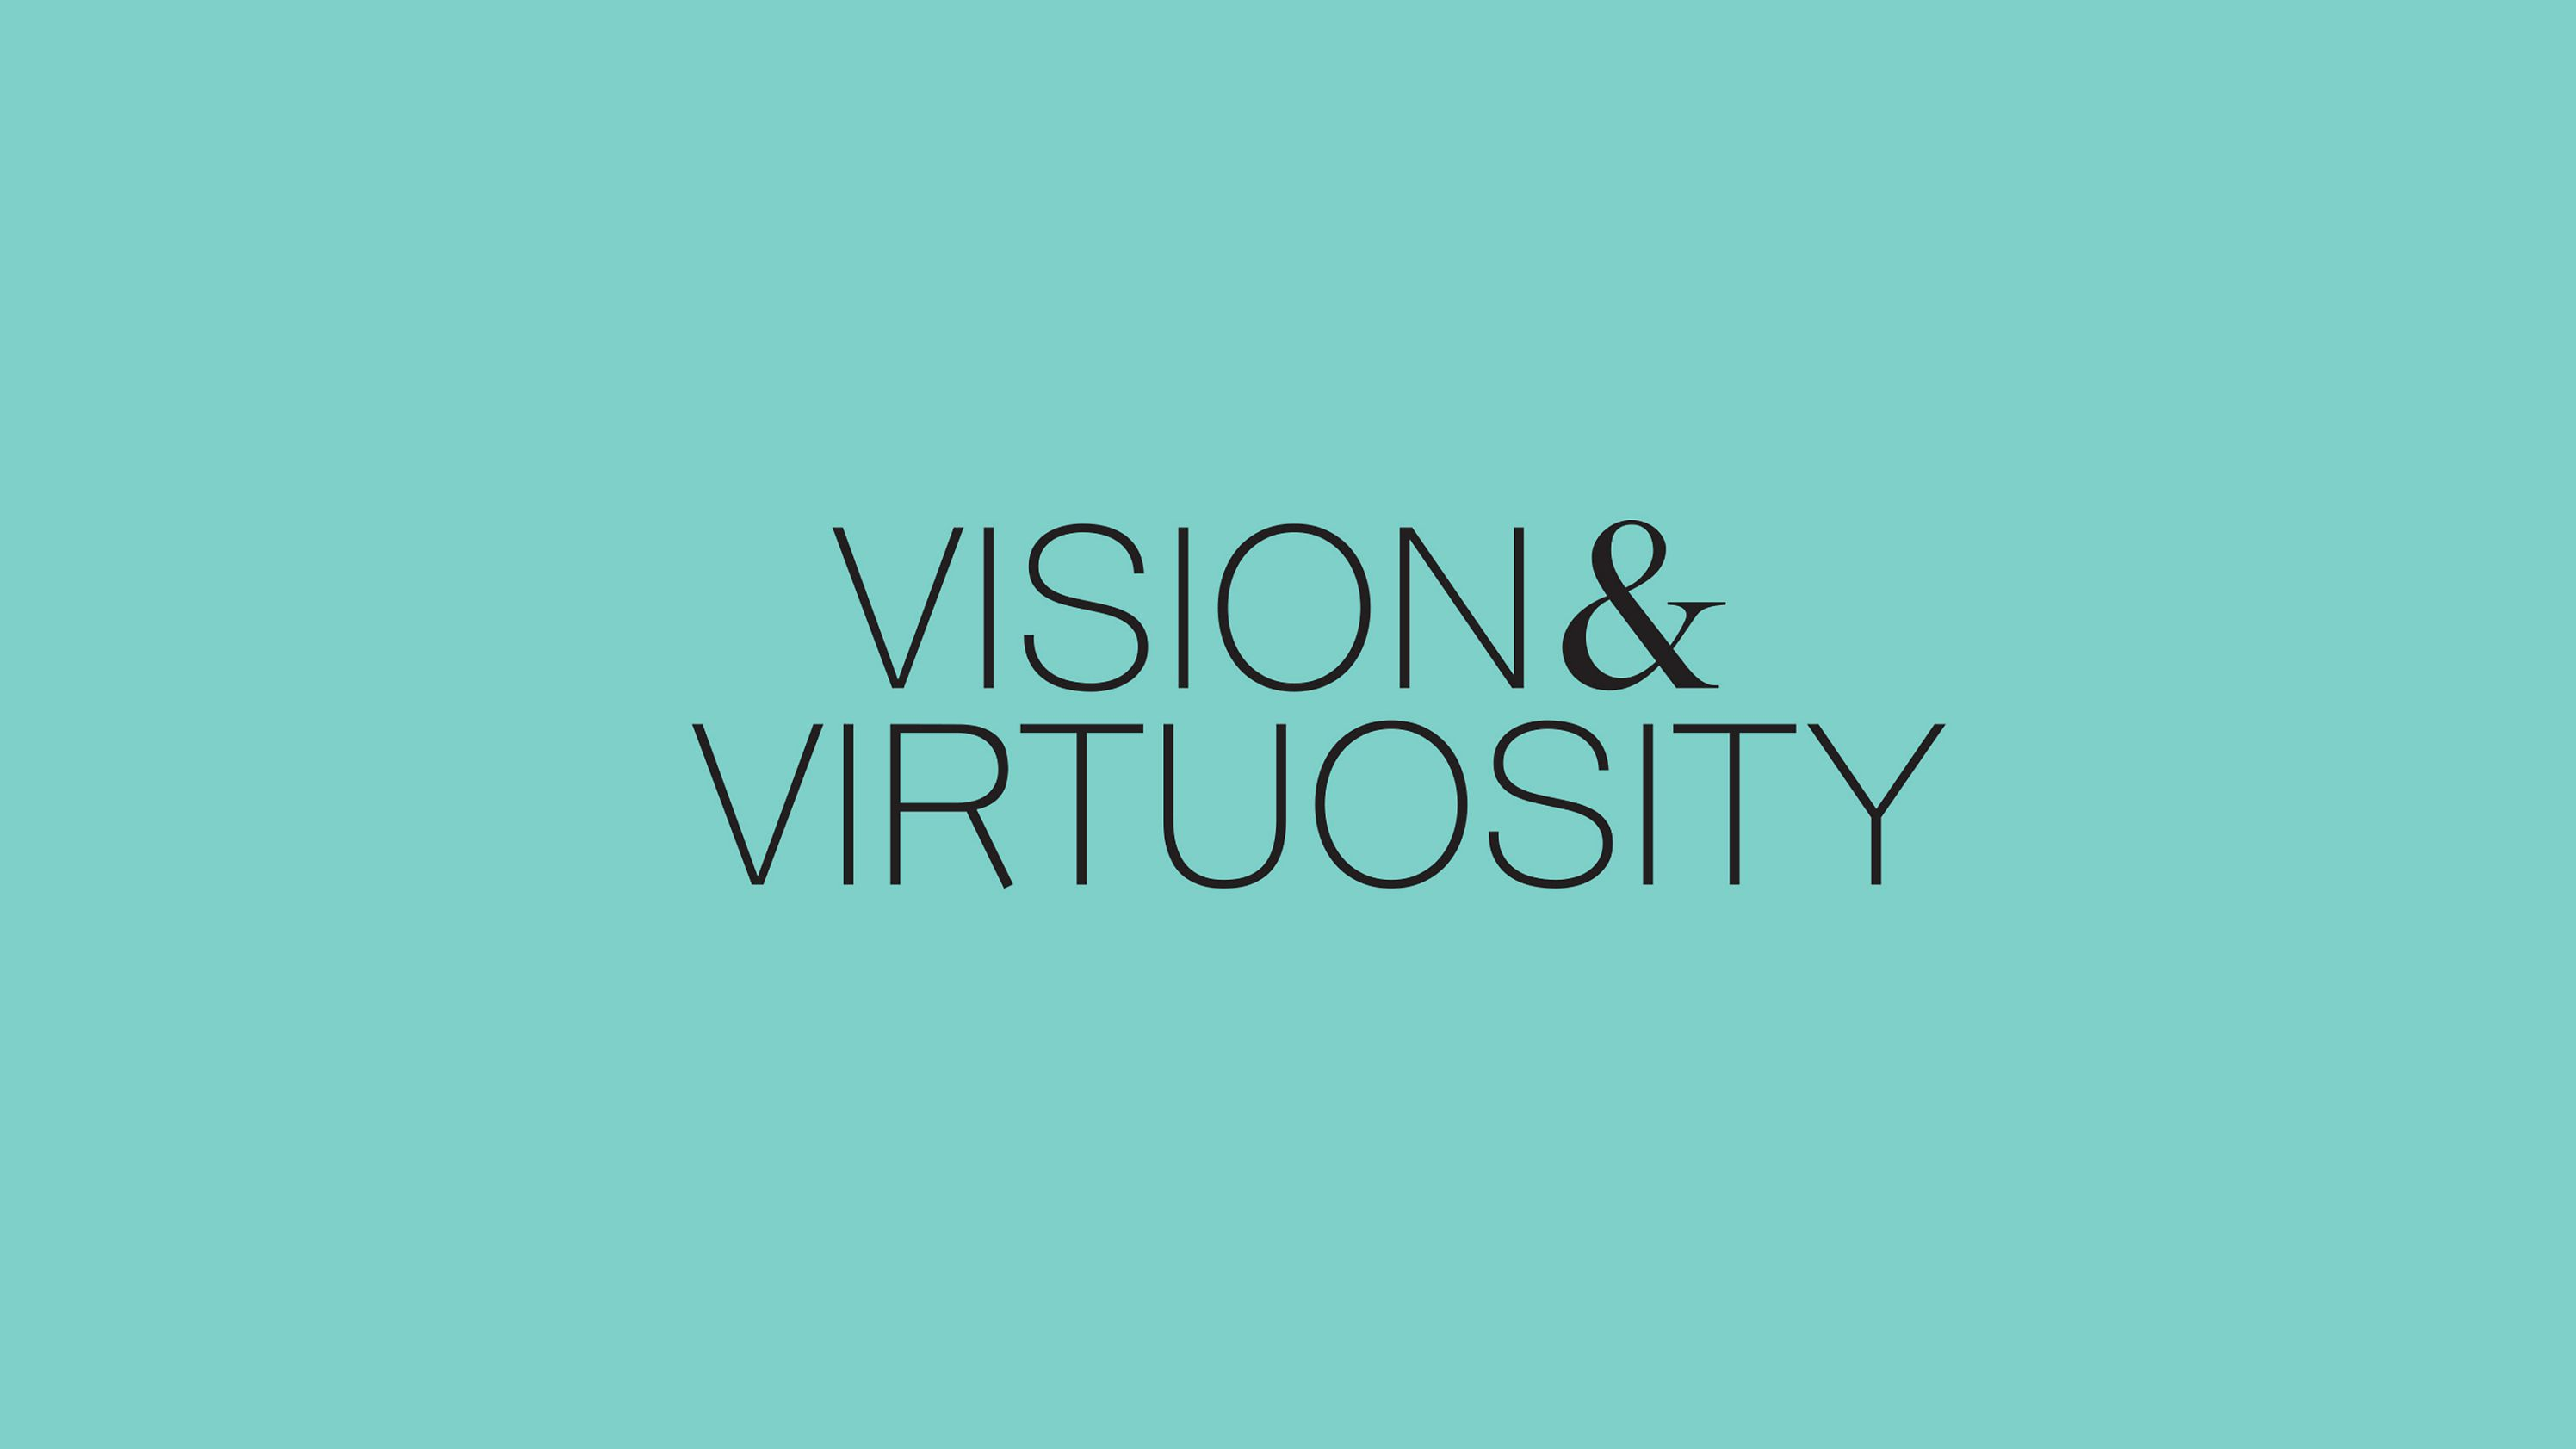 Tiffany & Co. Vision & Virtuosity Video